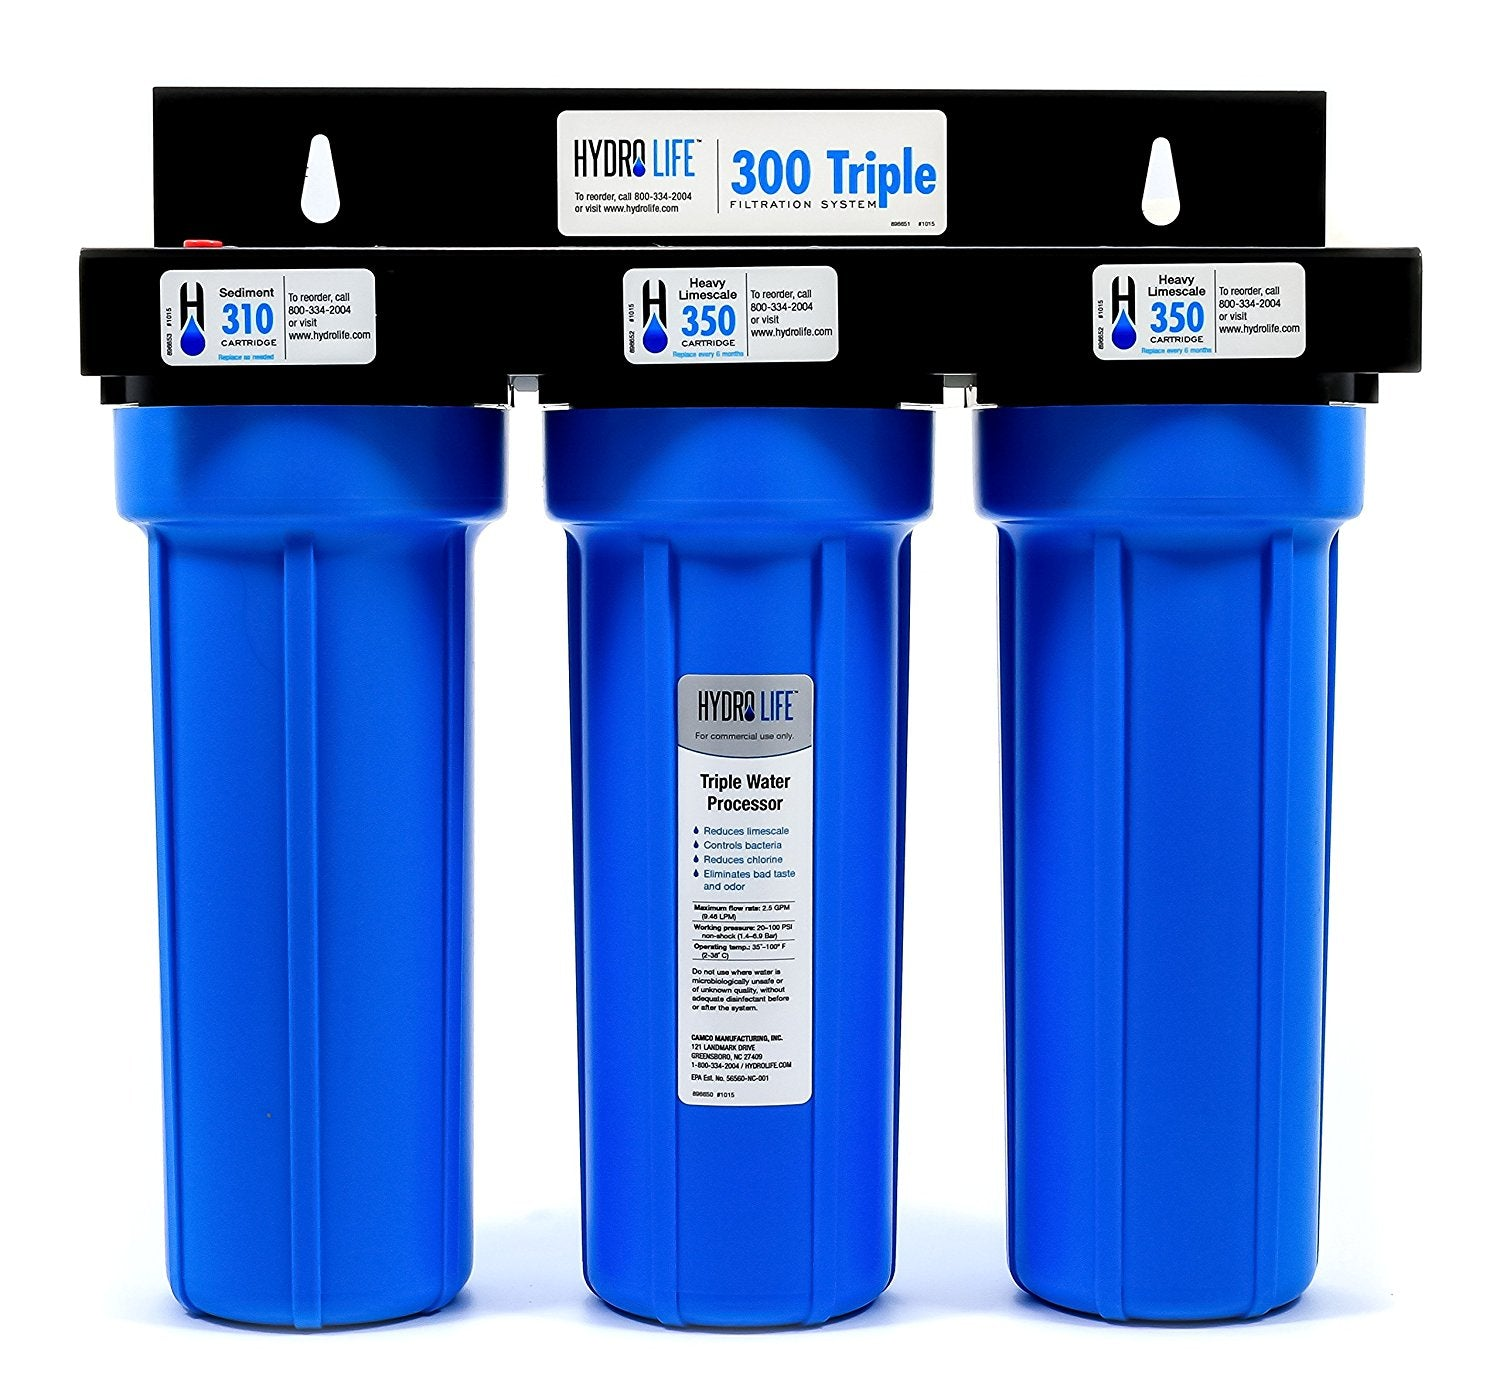 Hydro-Life-52644-300-Series-Model-300-Triple-Filtration-System